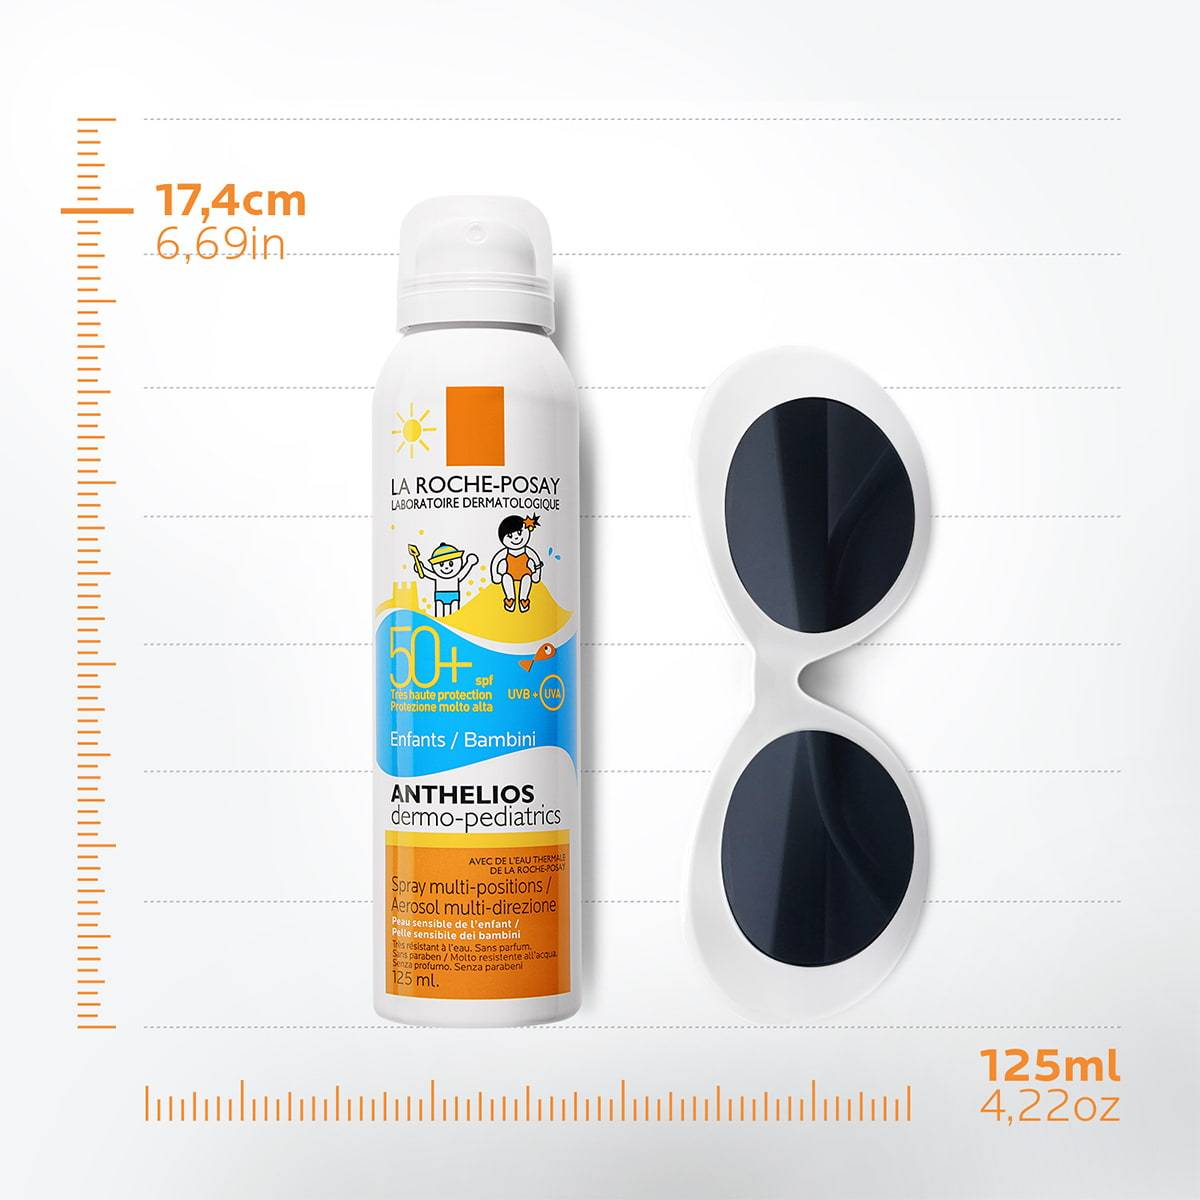 La Roche Posay ProductPage Sun Anthelios Dermo Pediatrics Spray Spf50